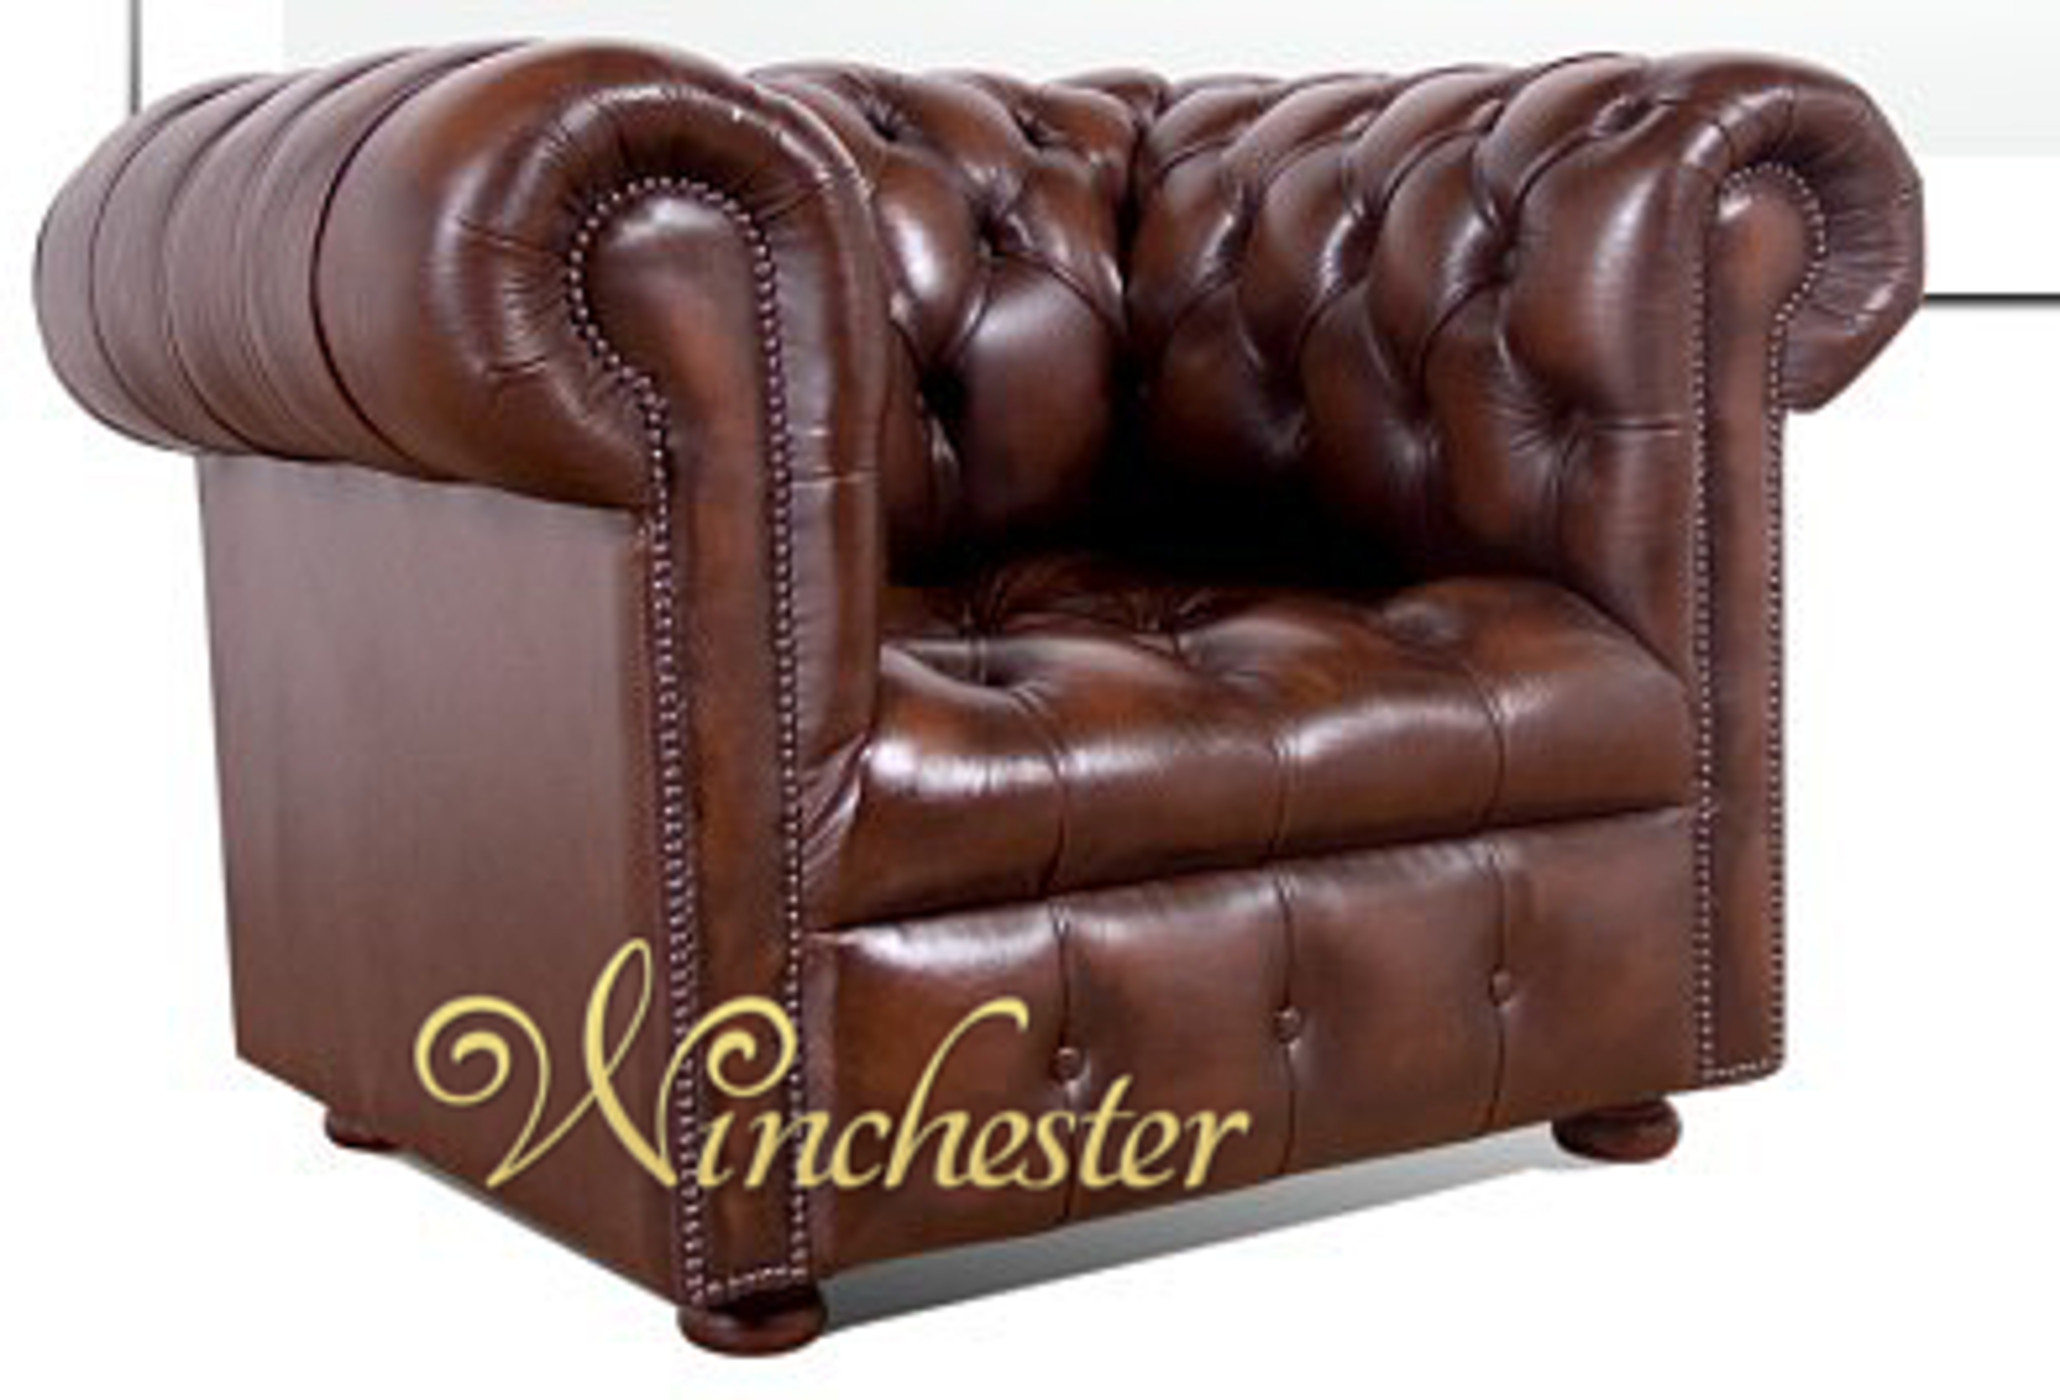 Chesterfield Edwardian 1 Seater Sofa Settee Wc